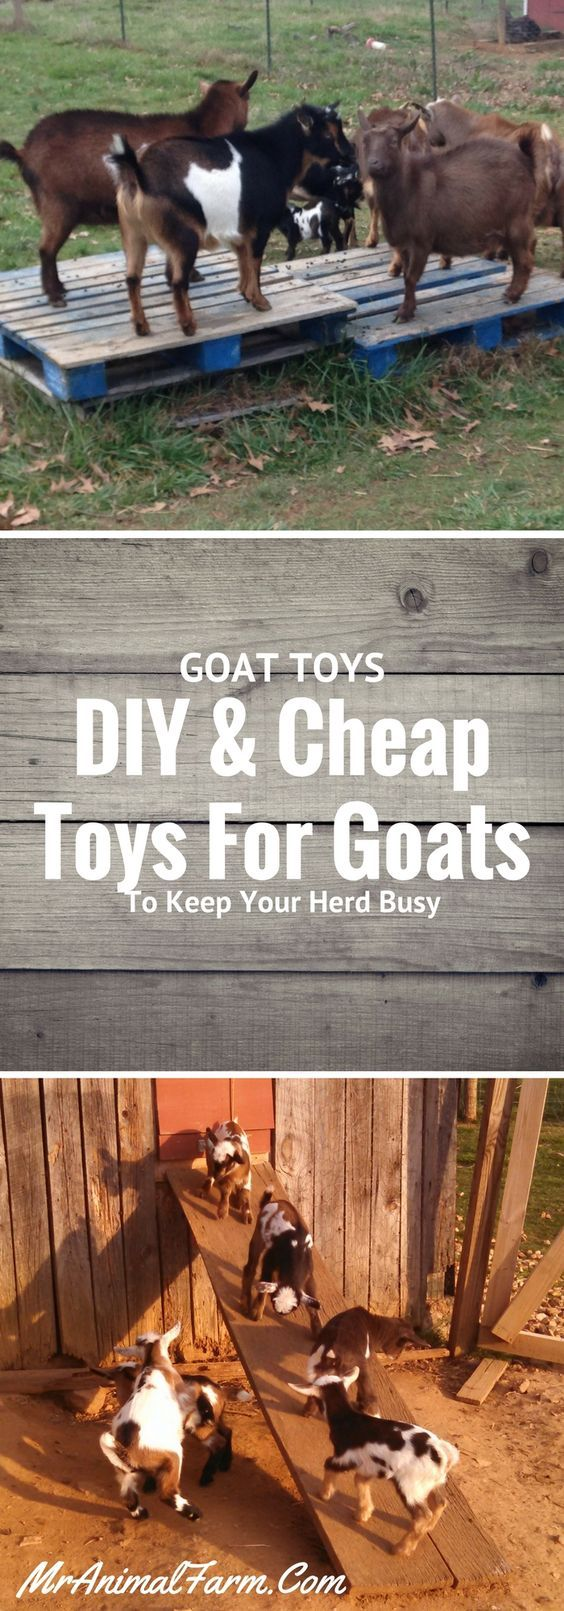 Goat toys!  DIY and Cheap toys for your goats to keep them busy and entertained.